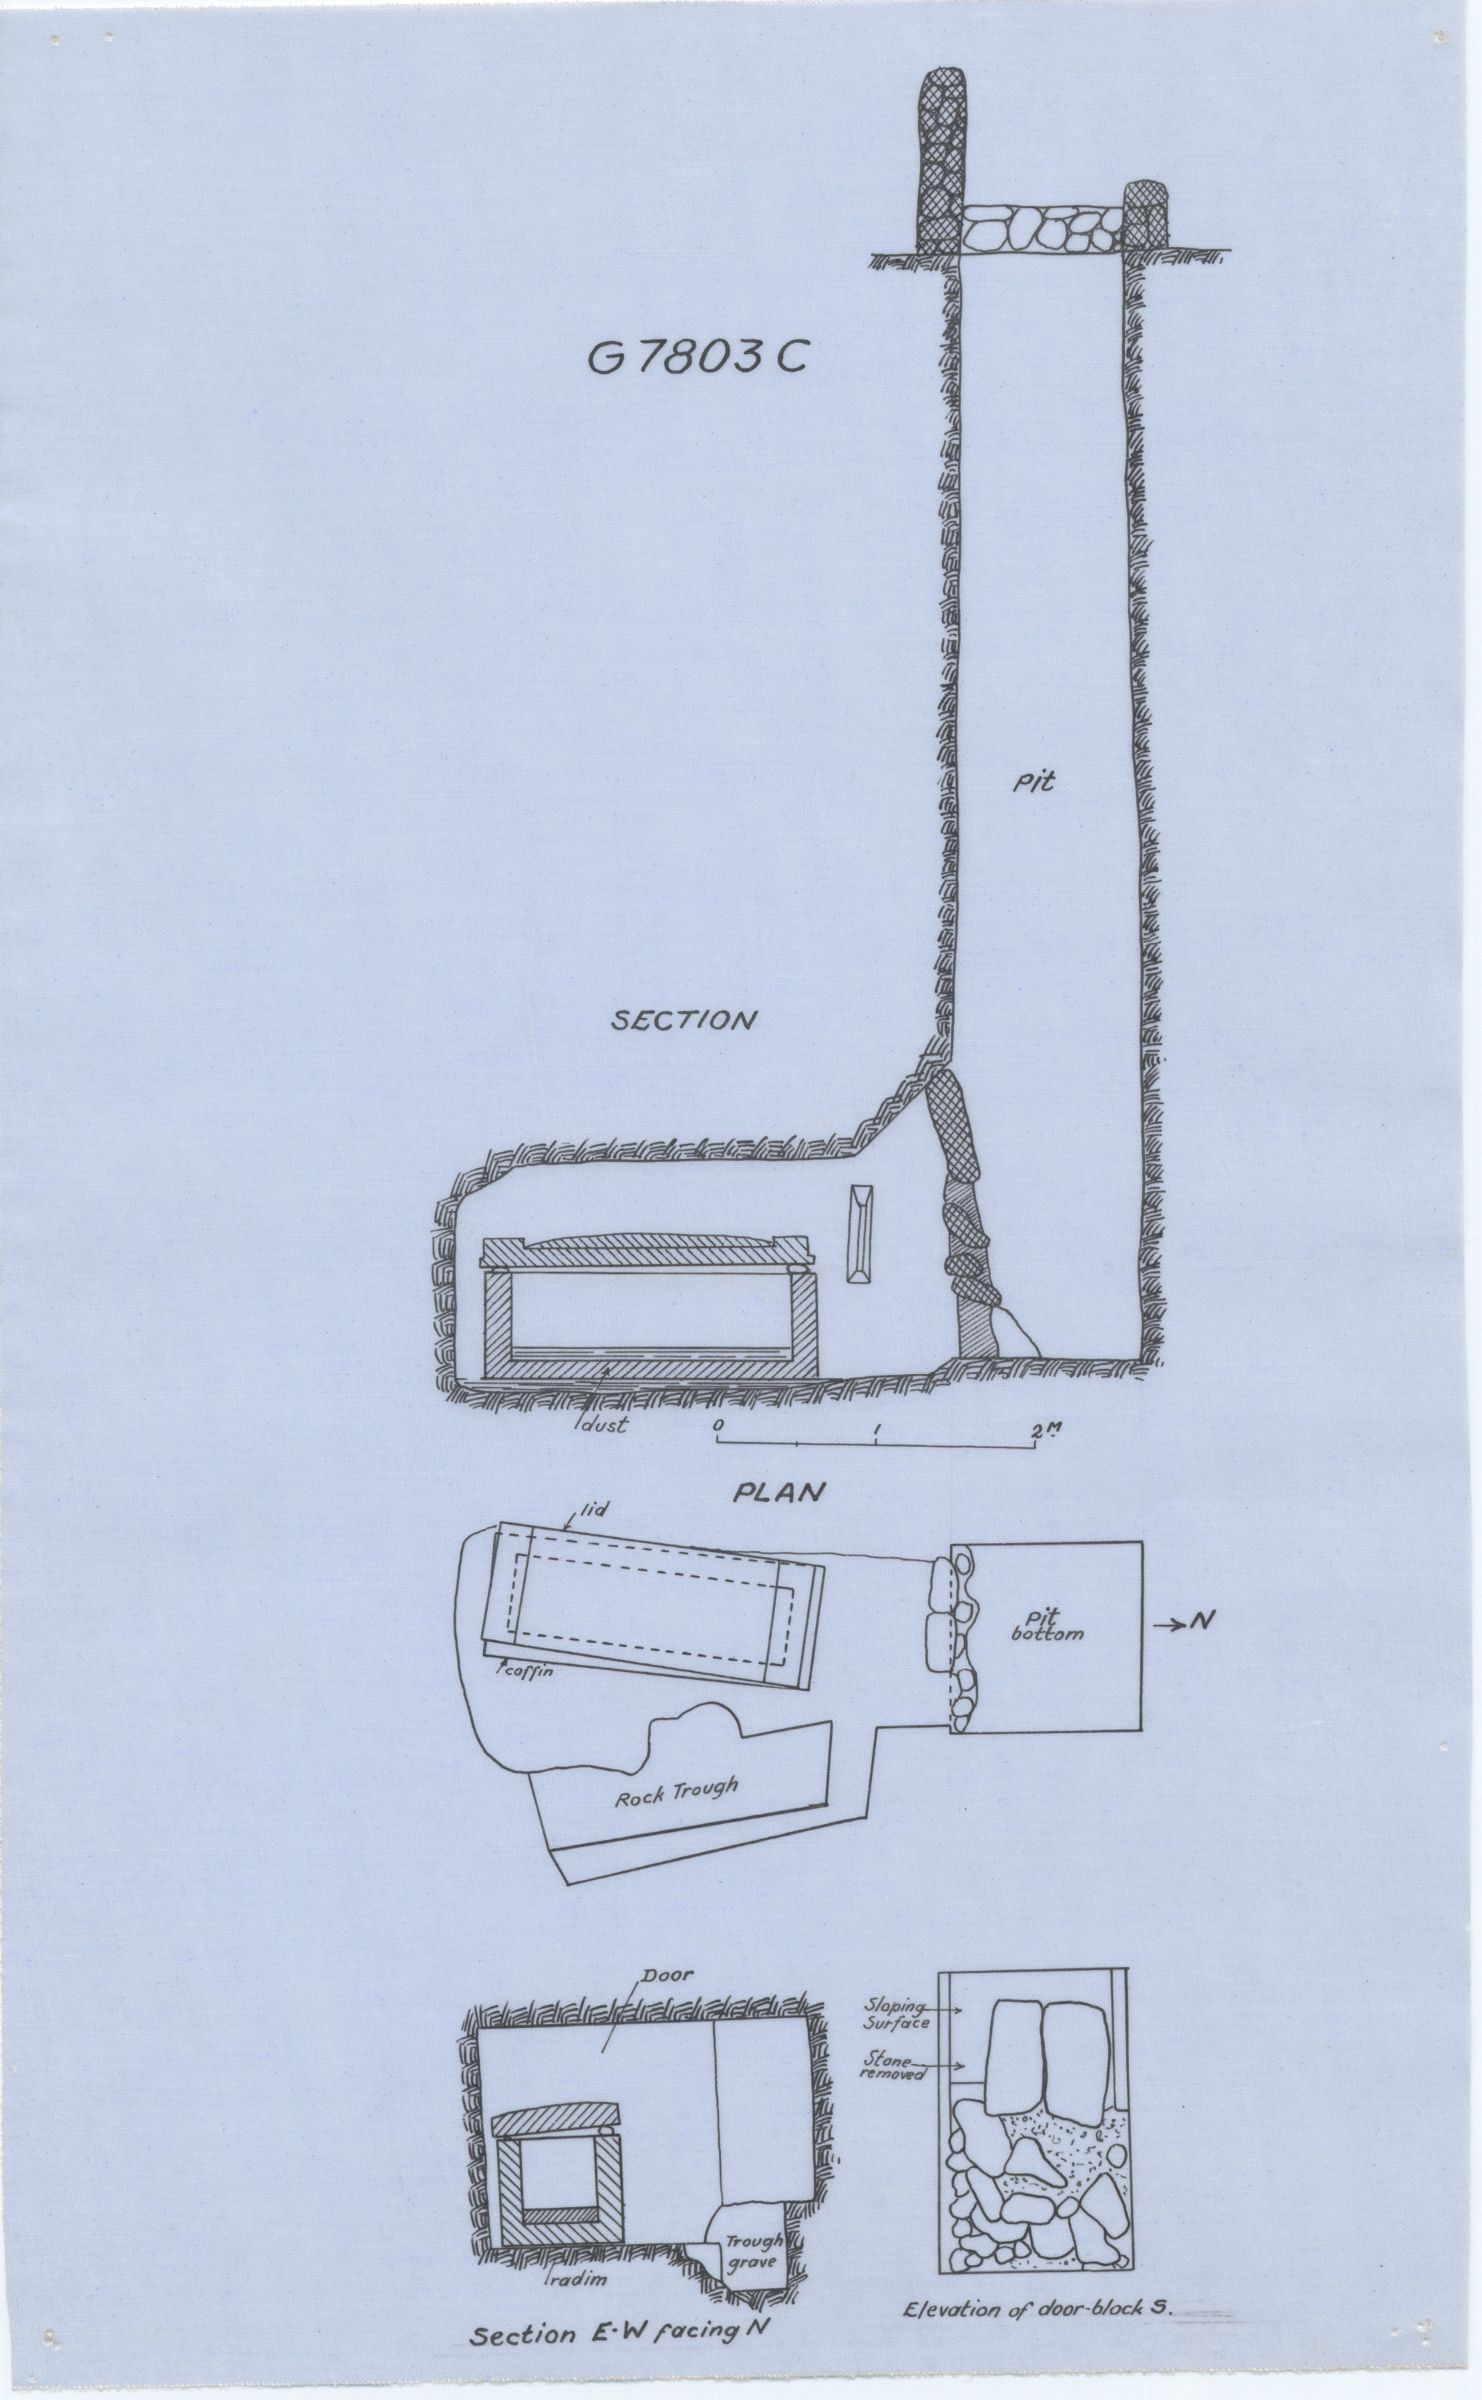 Maps and plans: G 7803, Shaft C